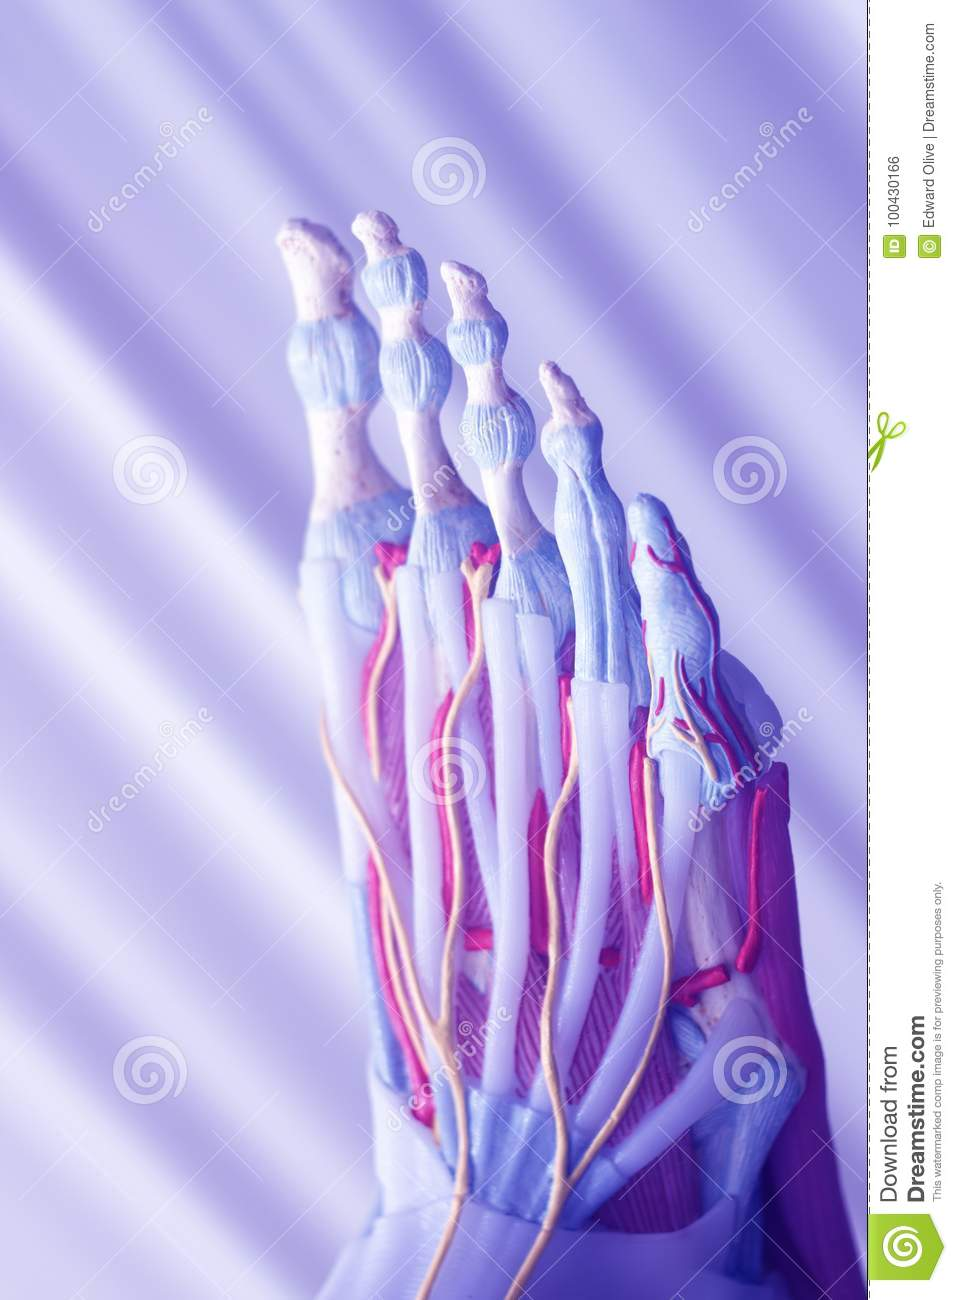 Human Foot Toes Model Stock Photo Image Of Interosseous 100430166